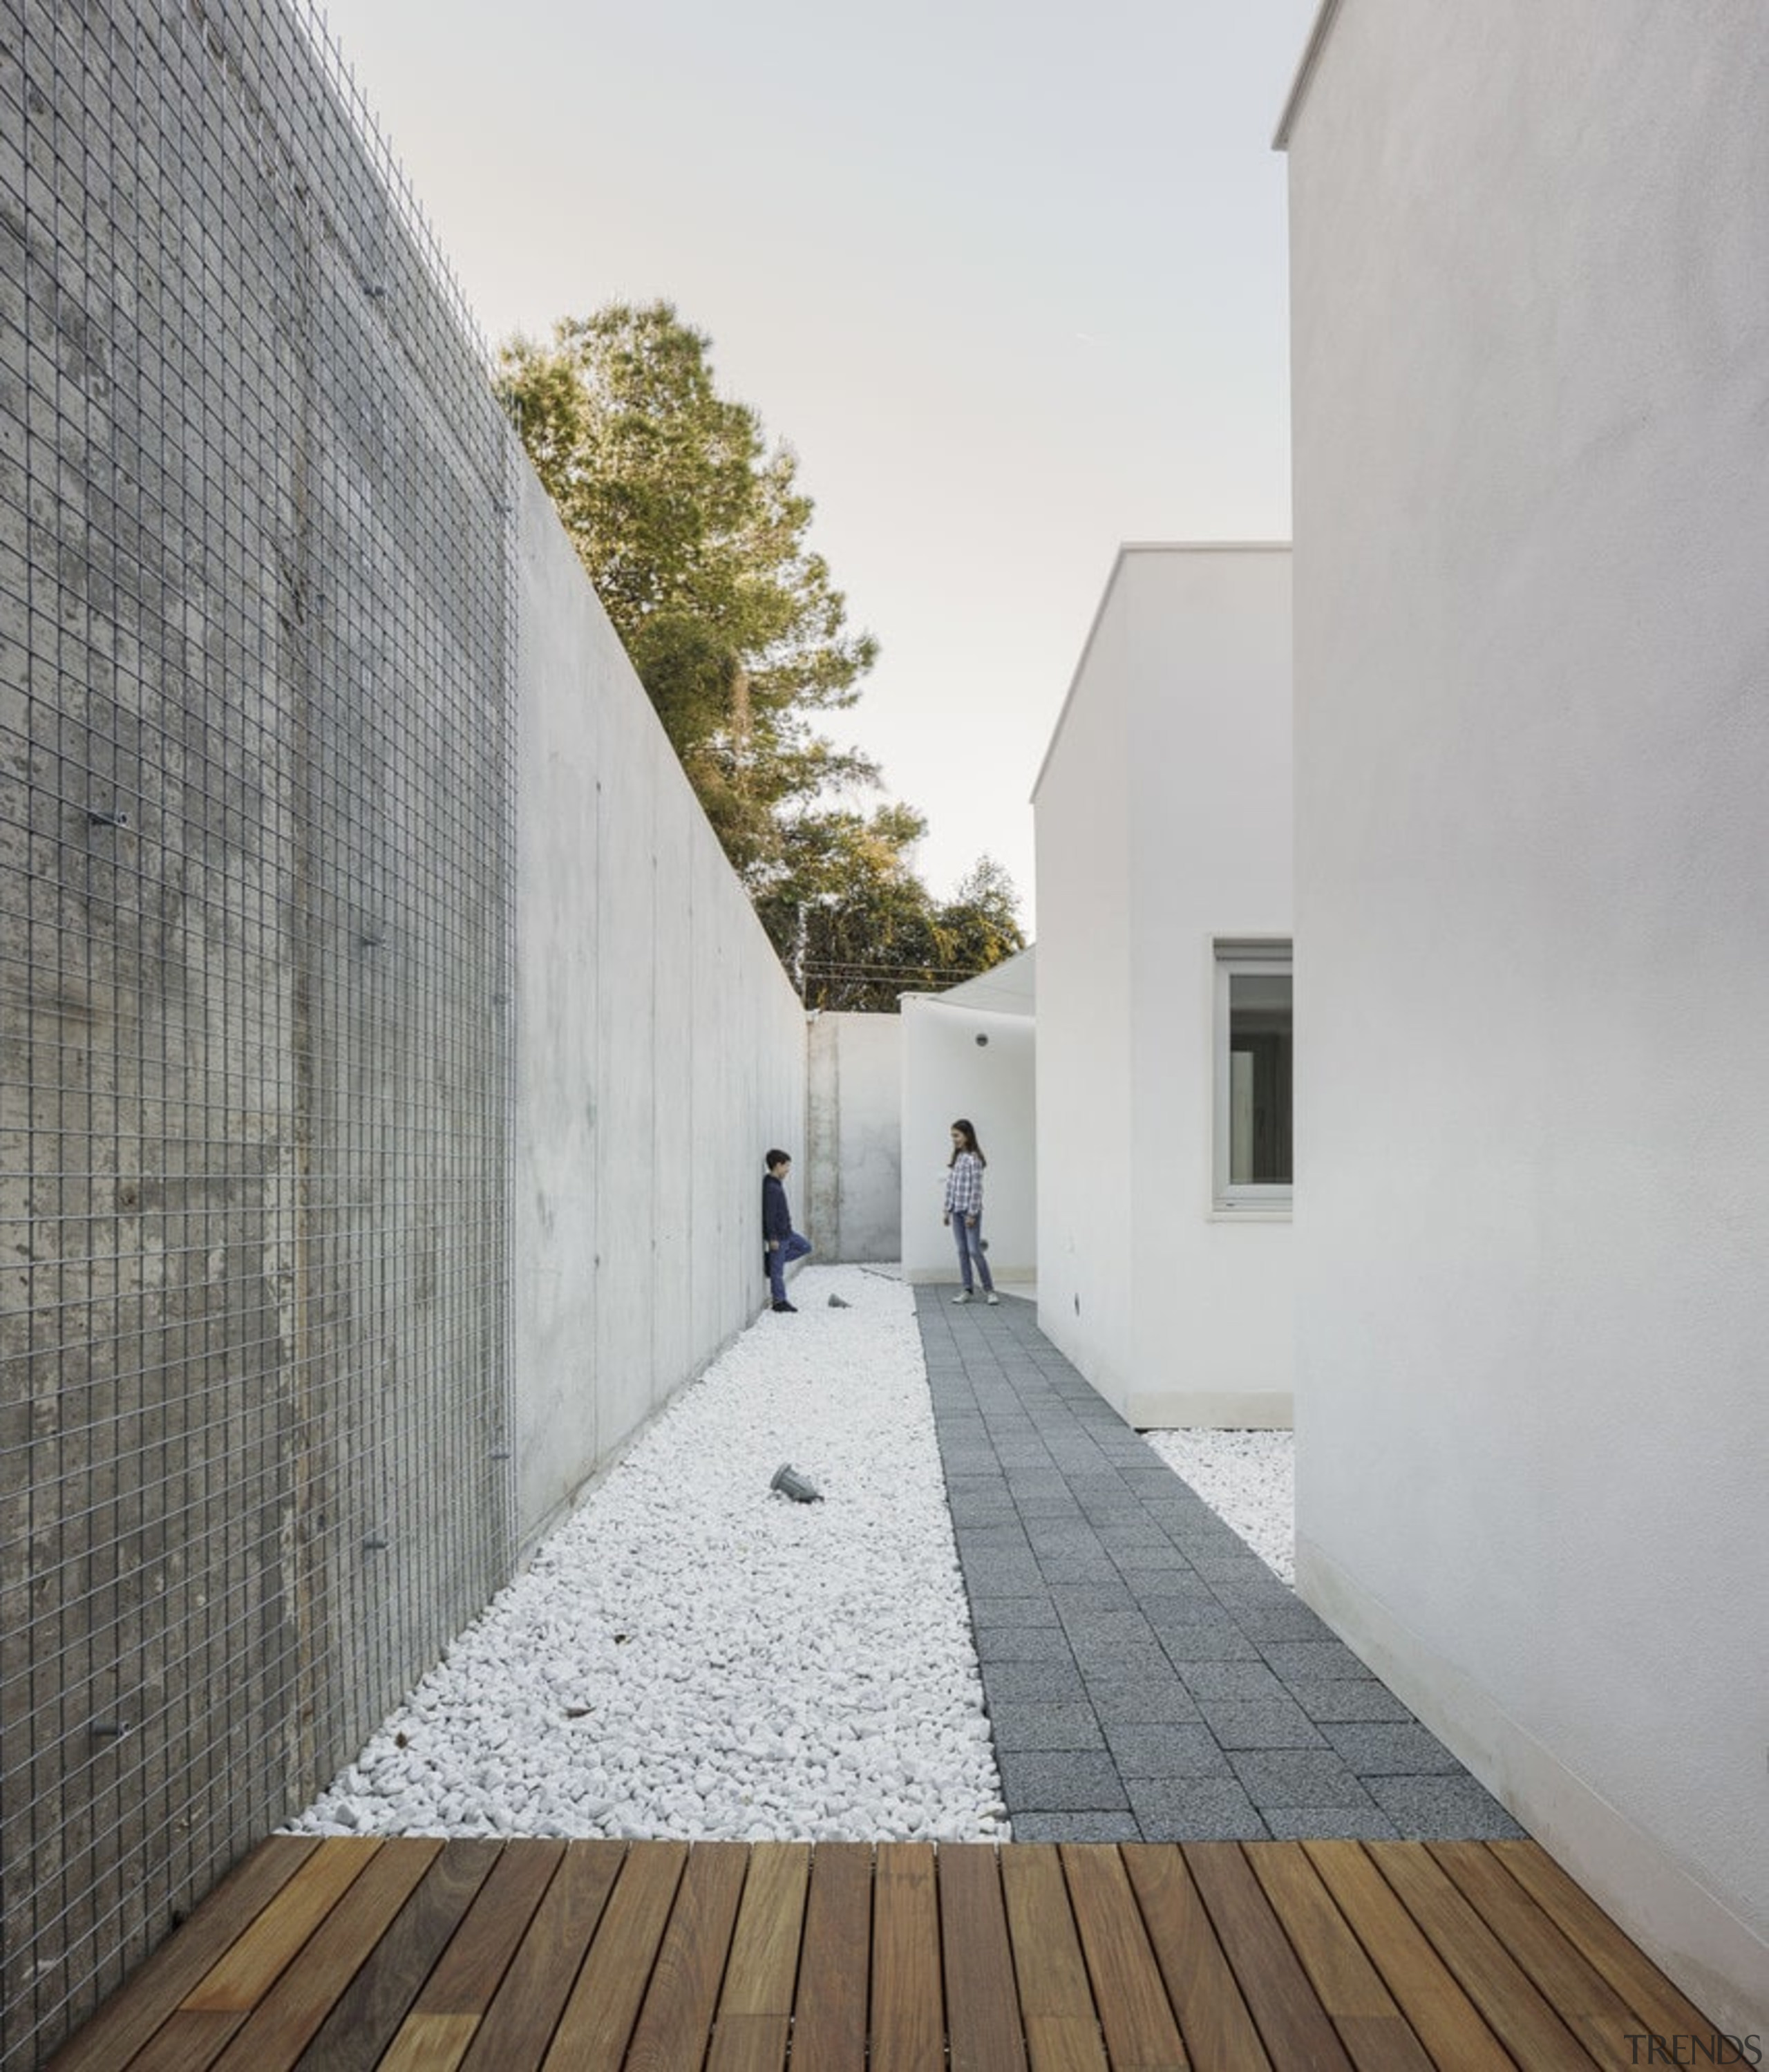 Concrete and wood give the home a natural architecture, building, daylighting, facade, house, property, sky, gray, white